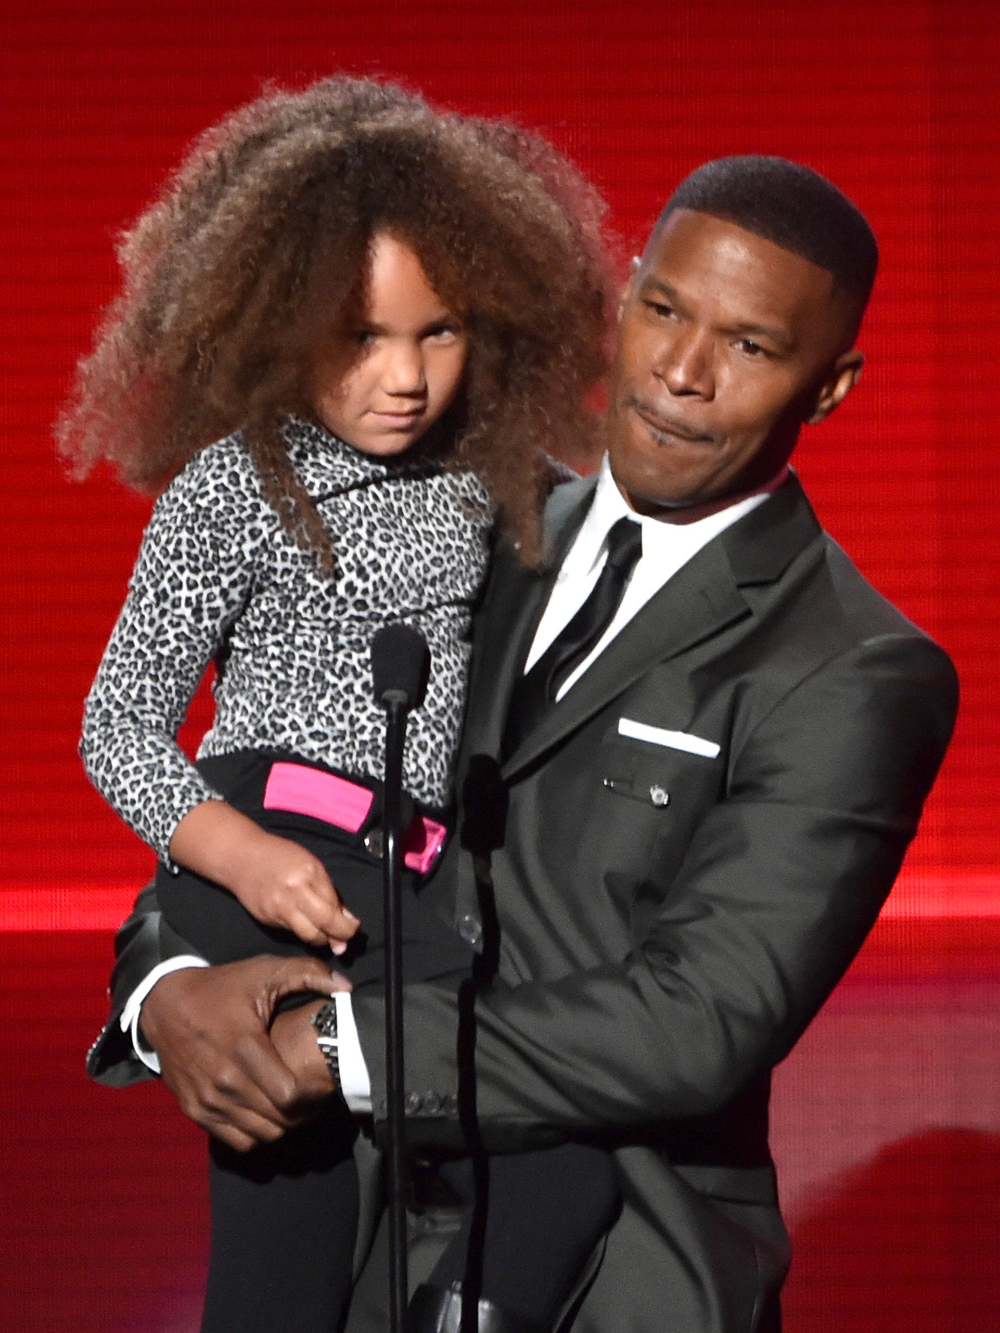 Jamie Foxx and Daughter Annalise Bishop Present at the 2014 AMAs and It Was Adorable (PHOTO)